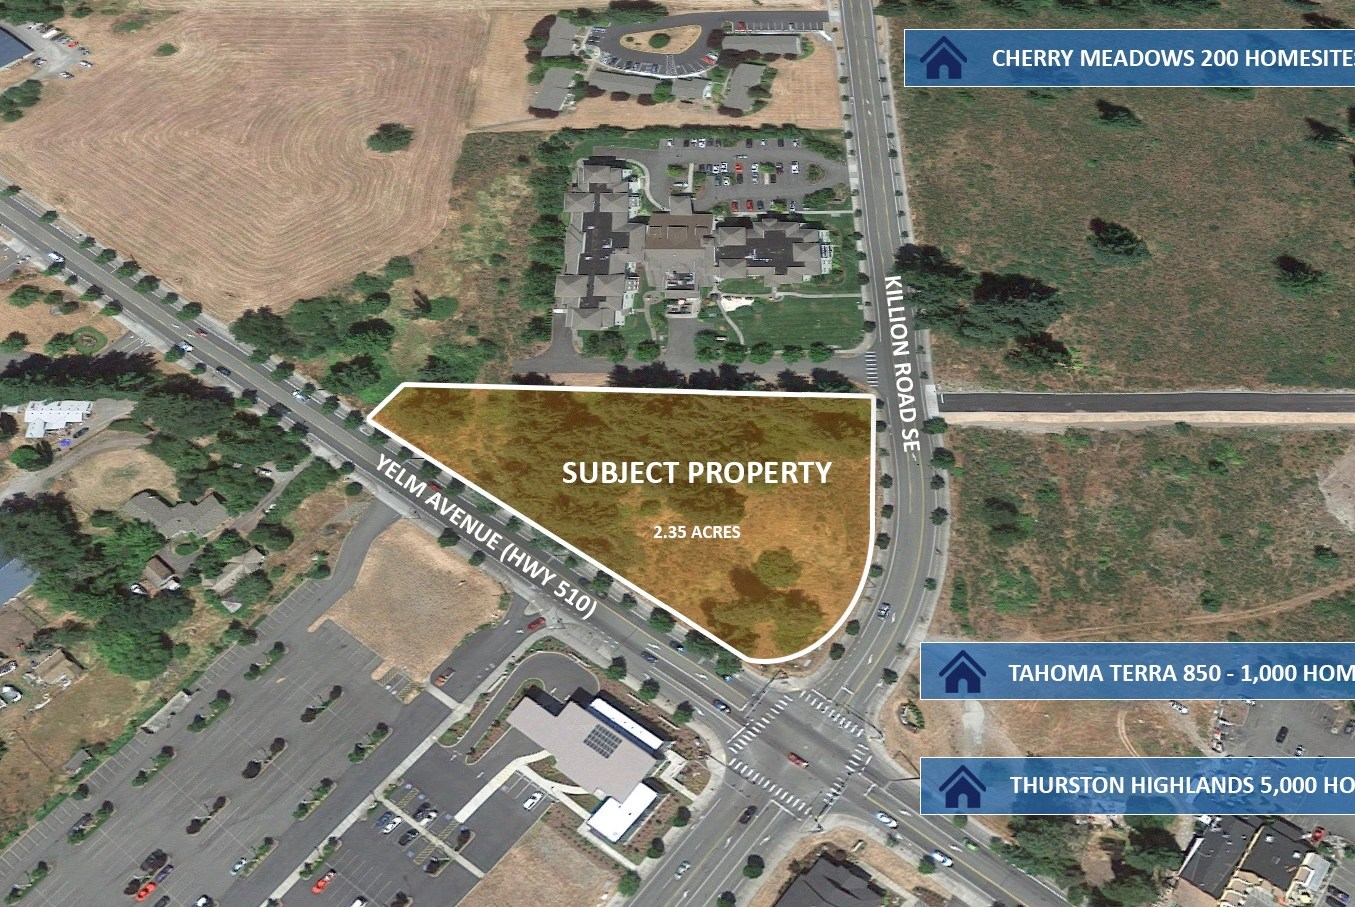 New Listing: Killion Crossing 2.35 Acre Development Site